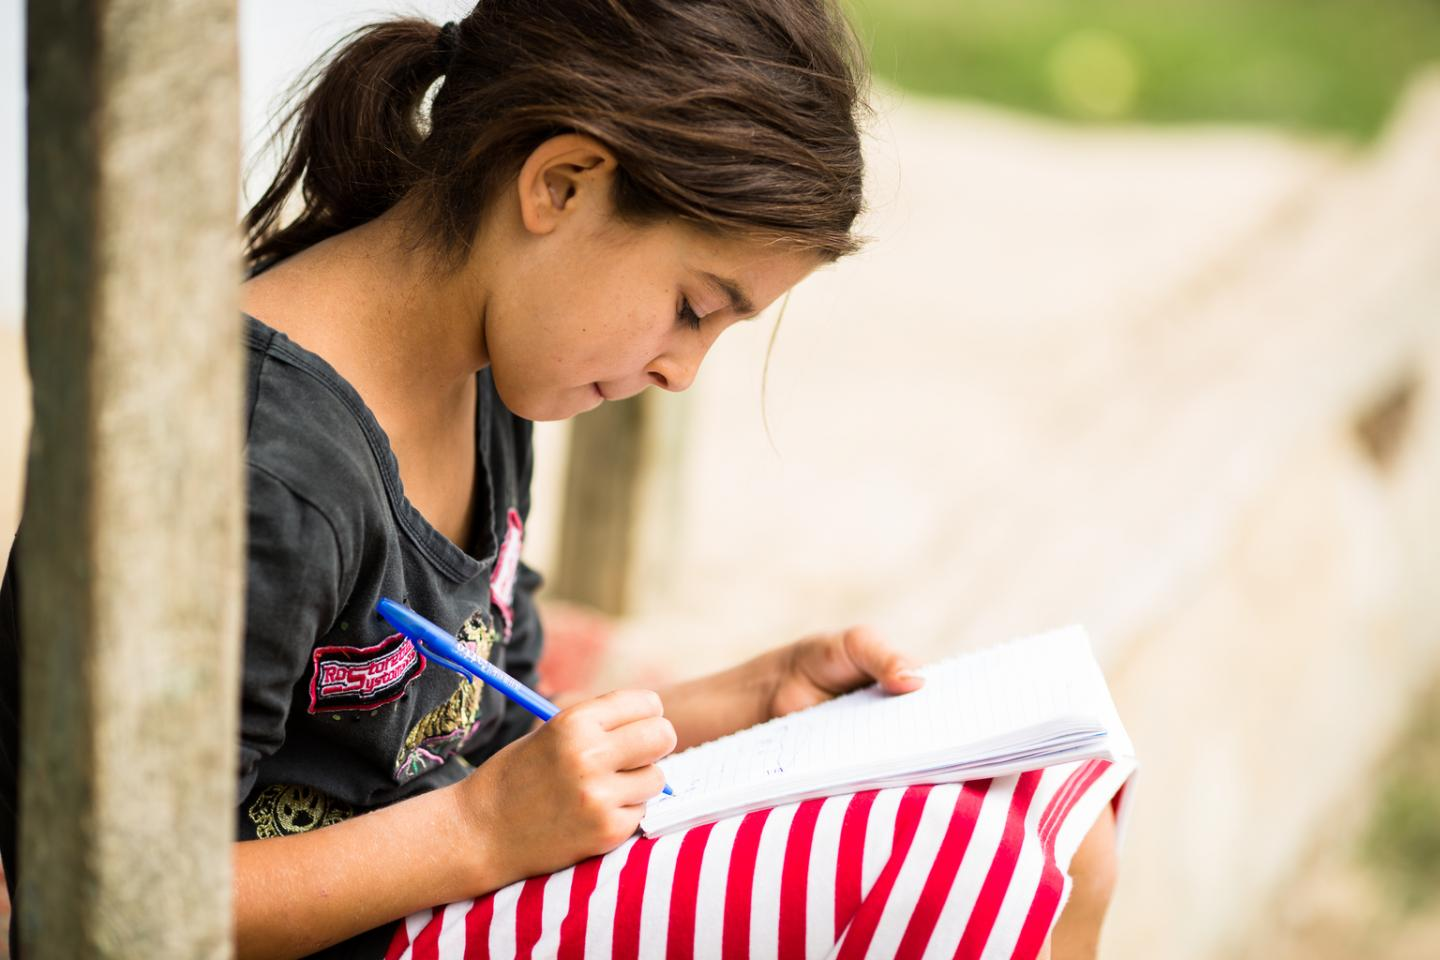 Loredana, 11 years old, sits doing her homework on the porch at her home in Romania.